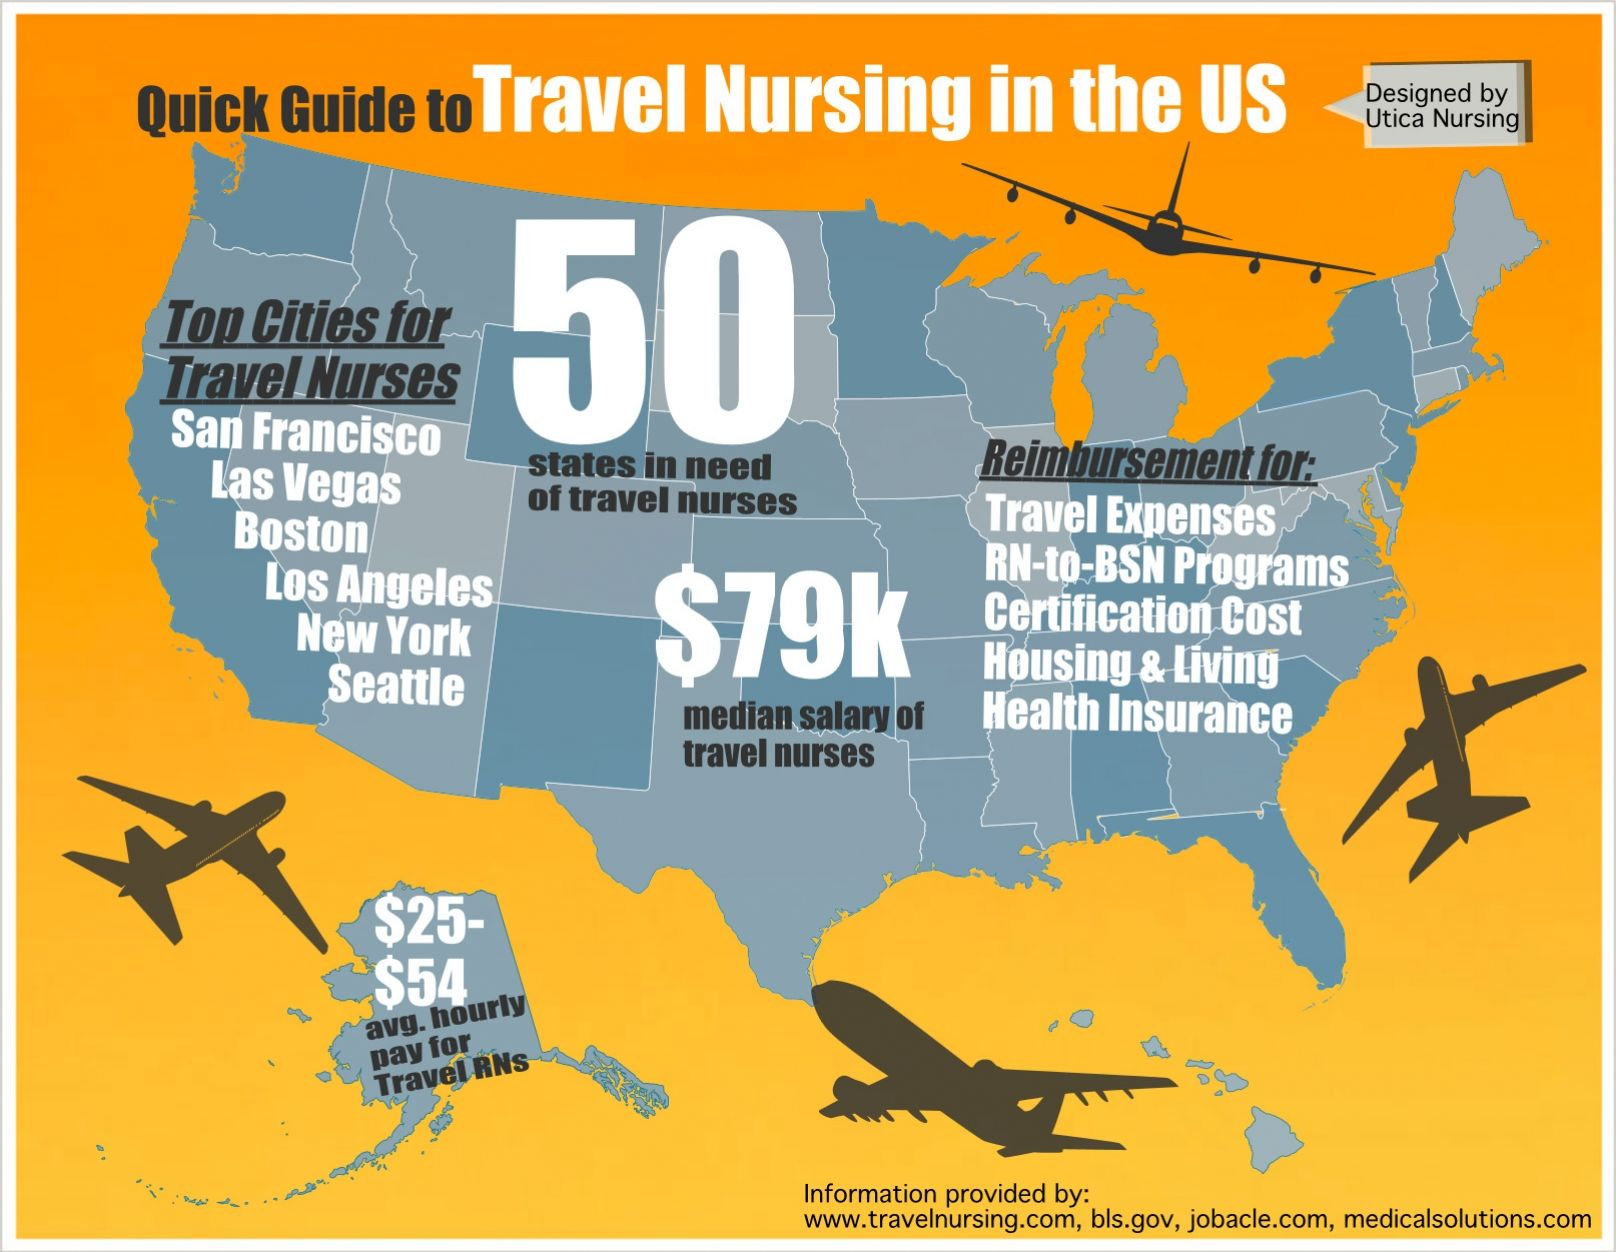 7 Different Ways Travel Nursing Can Enhance Your Nursing Career